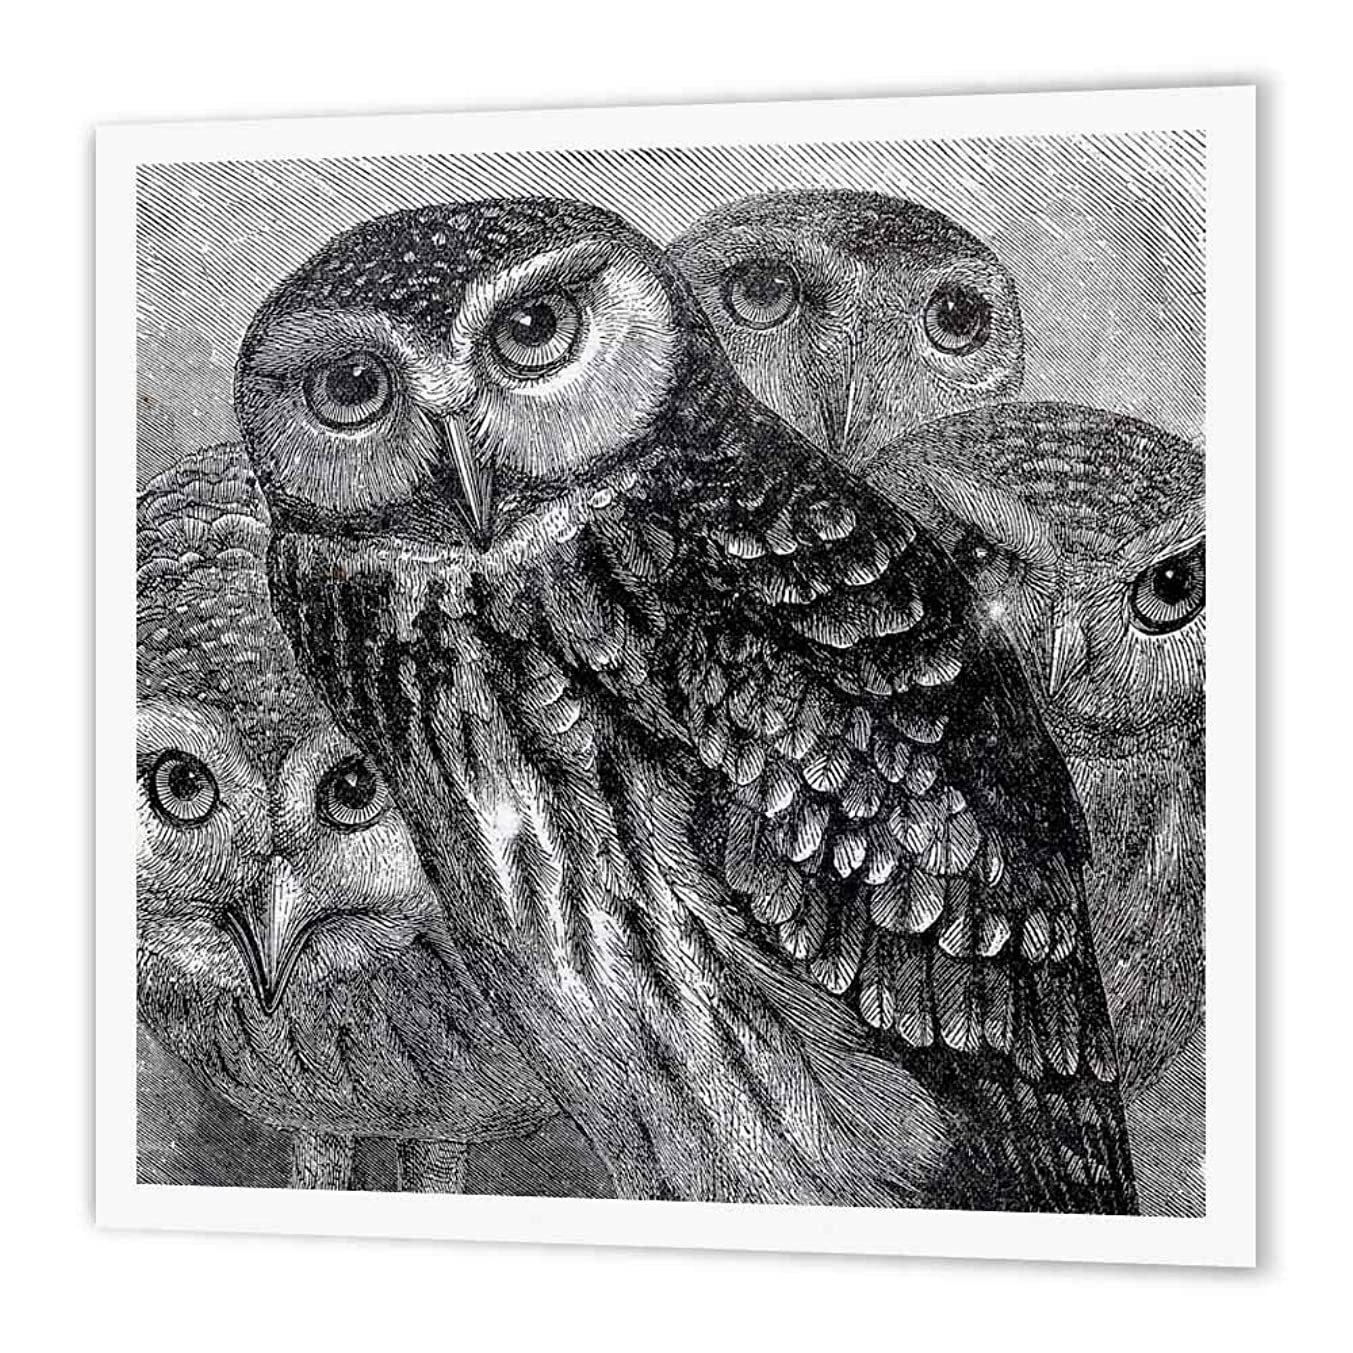 3dRose ht_151439_2 Group of Owls-Black and White Engraving Etching-Fine Art Birds-Iron on Heat Transfer for White Material, 6 by 6-Inch